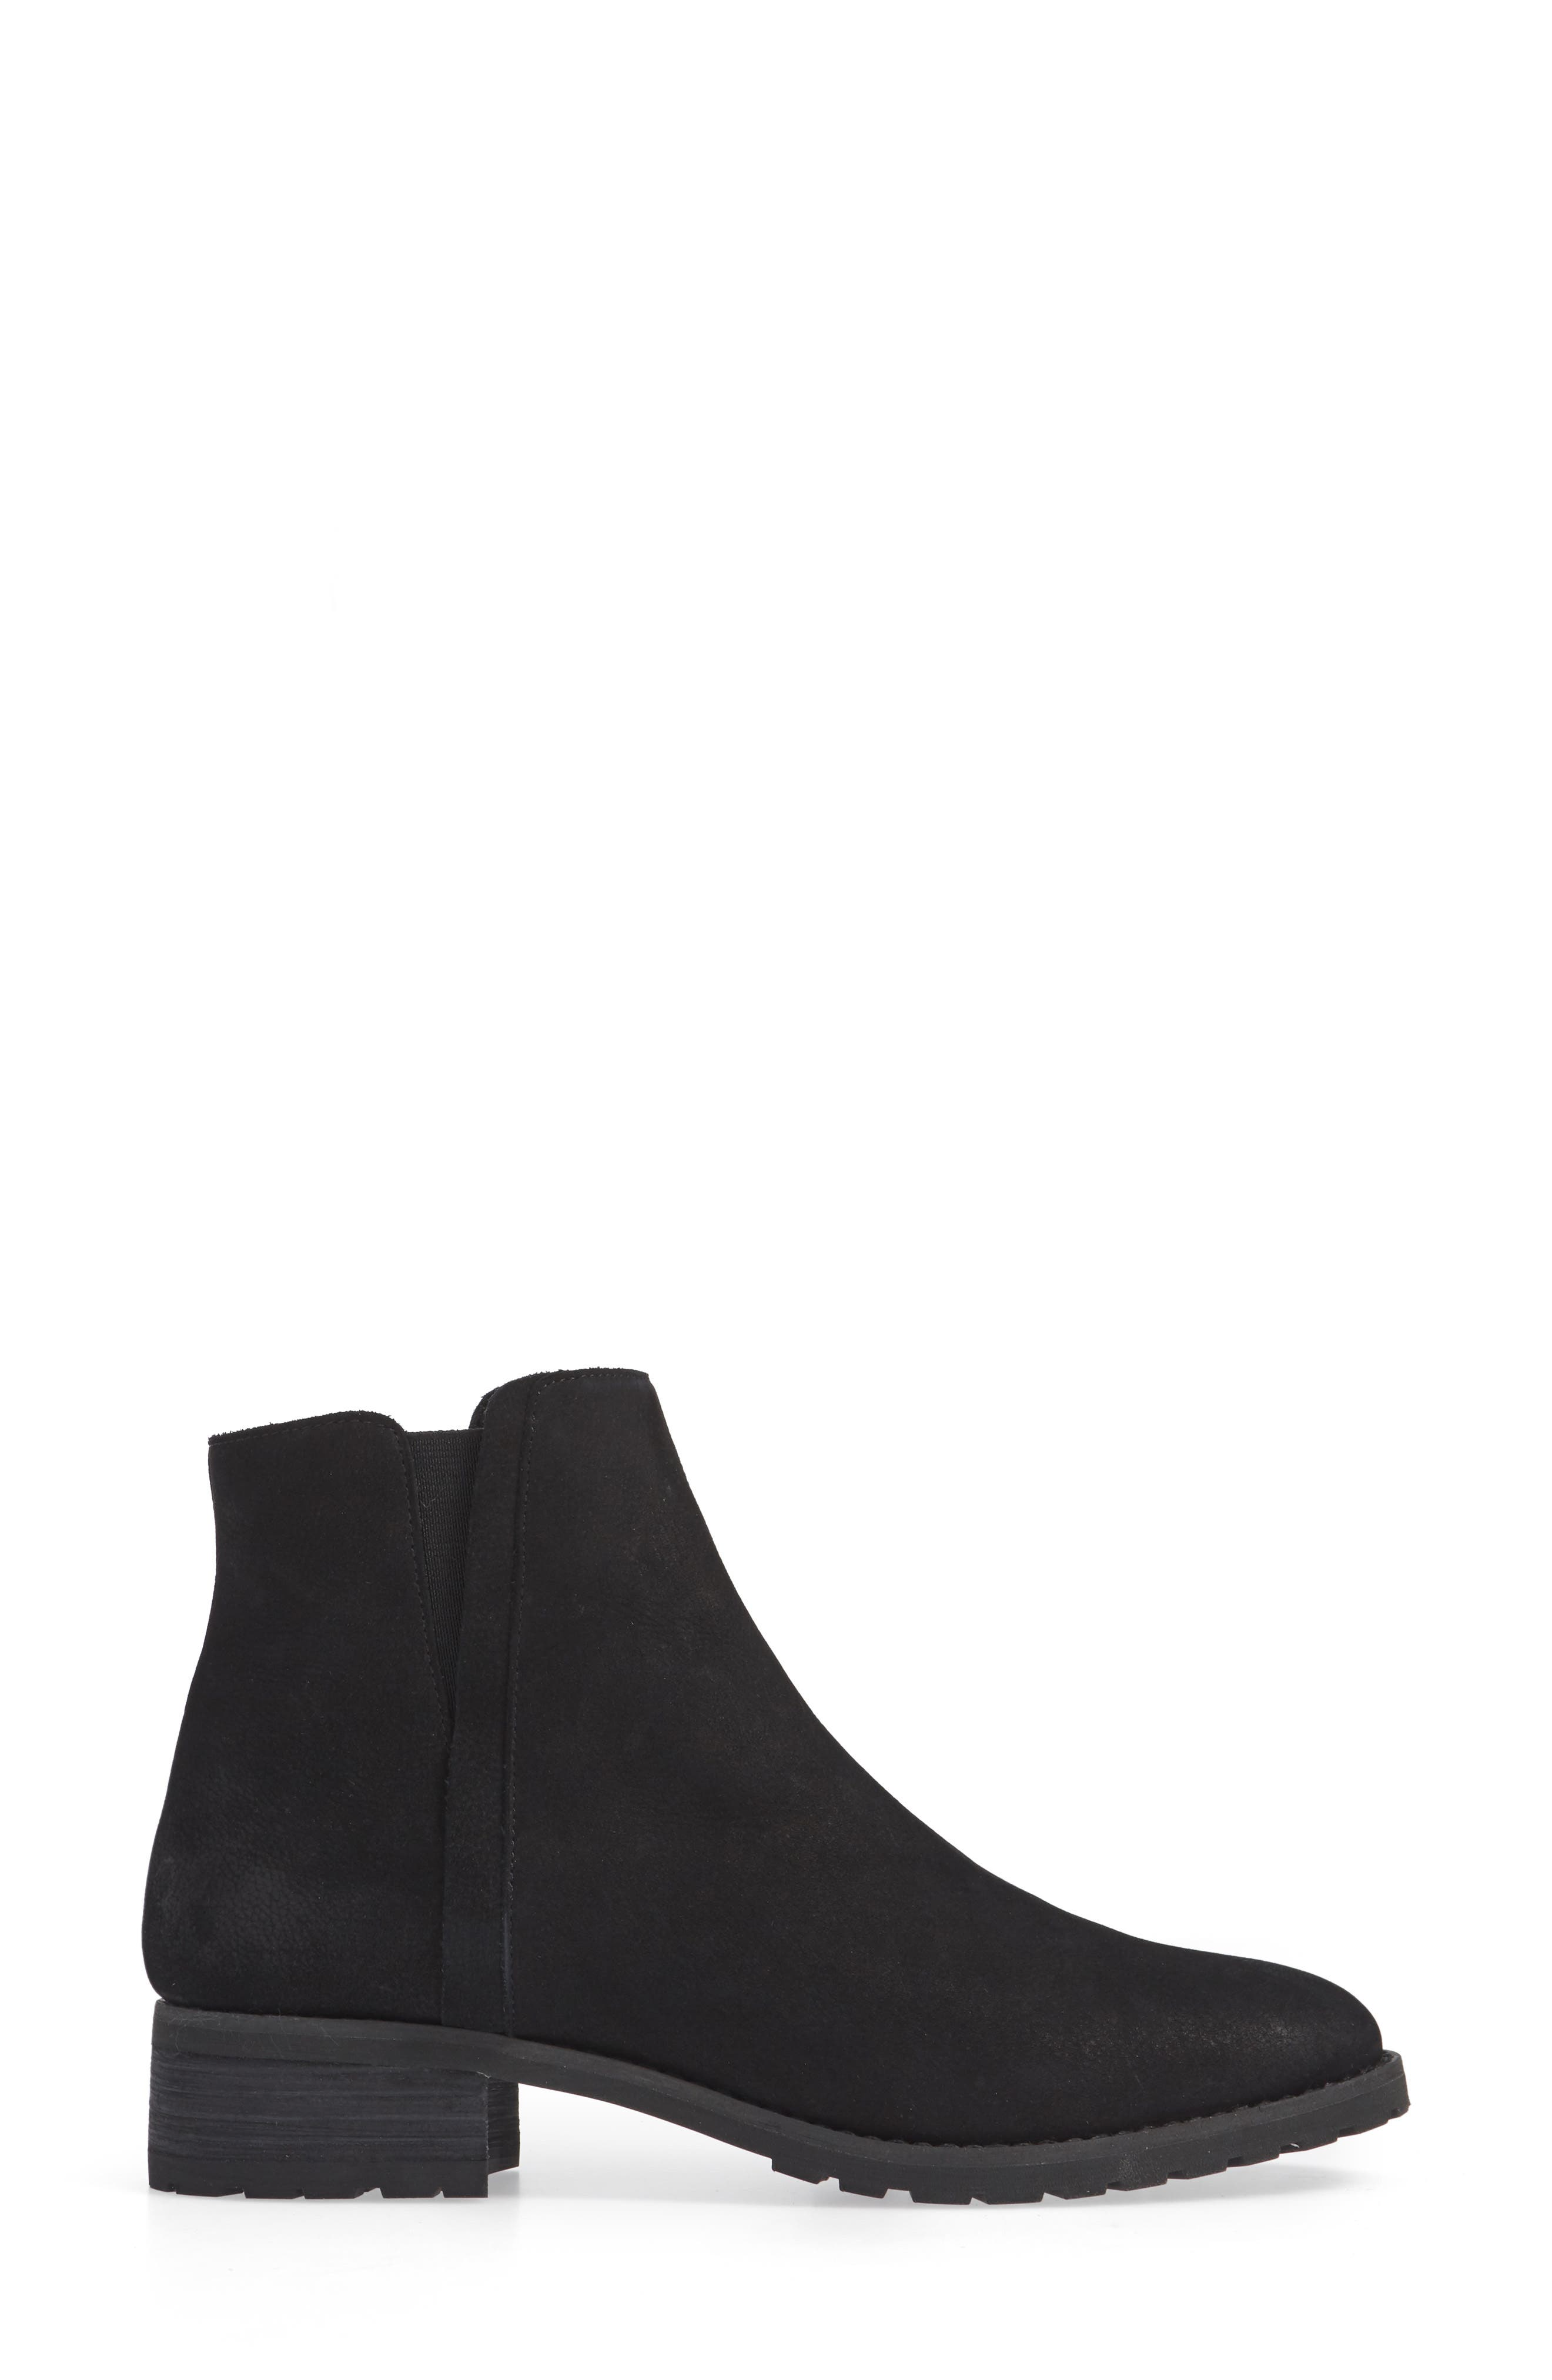 Ollie Water Resistant Bootie,                             Alternate thumbnail 3, color,                             BLACK OILED NUBUCK